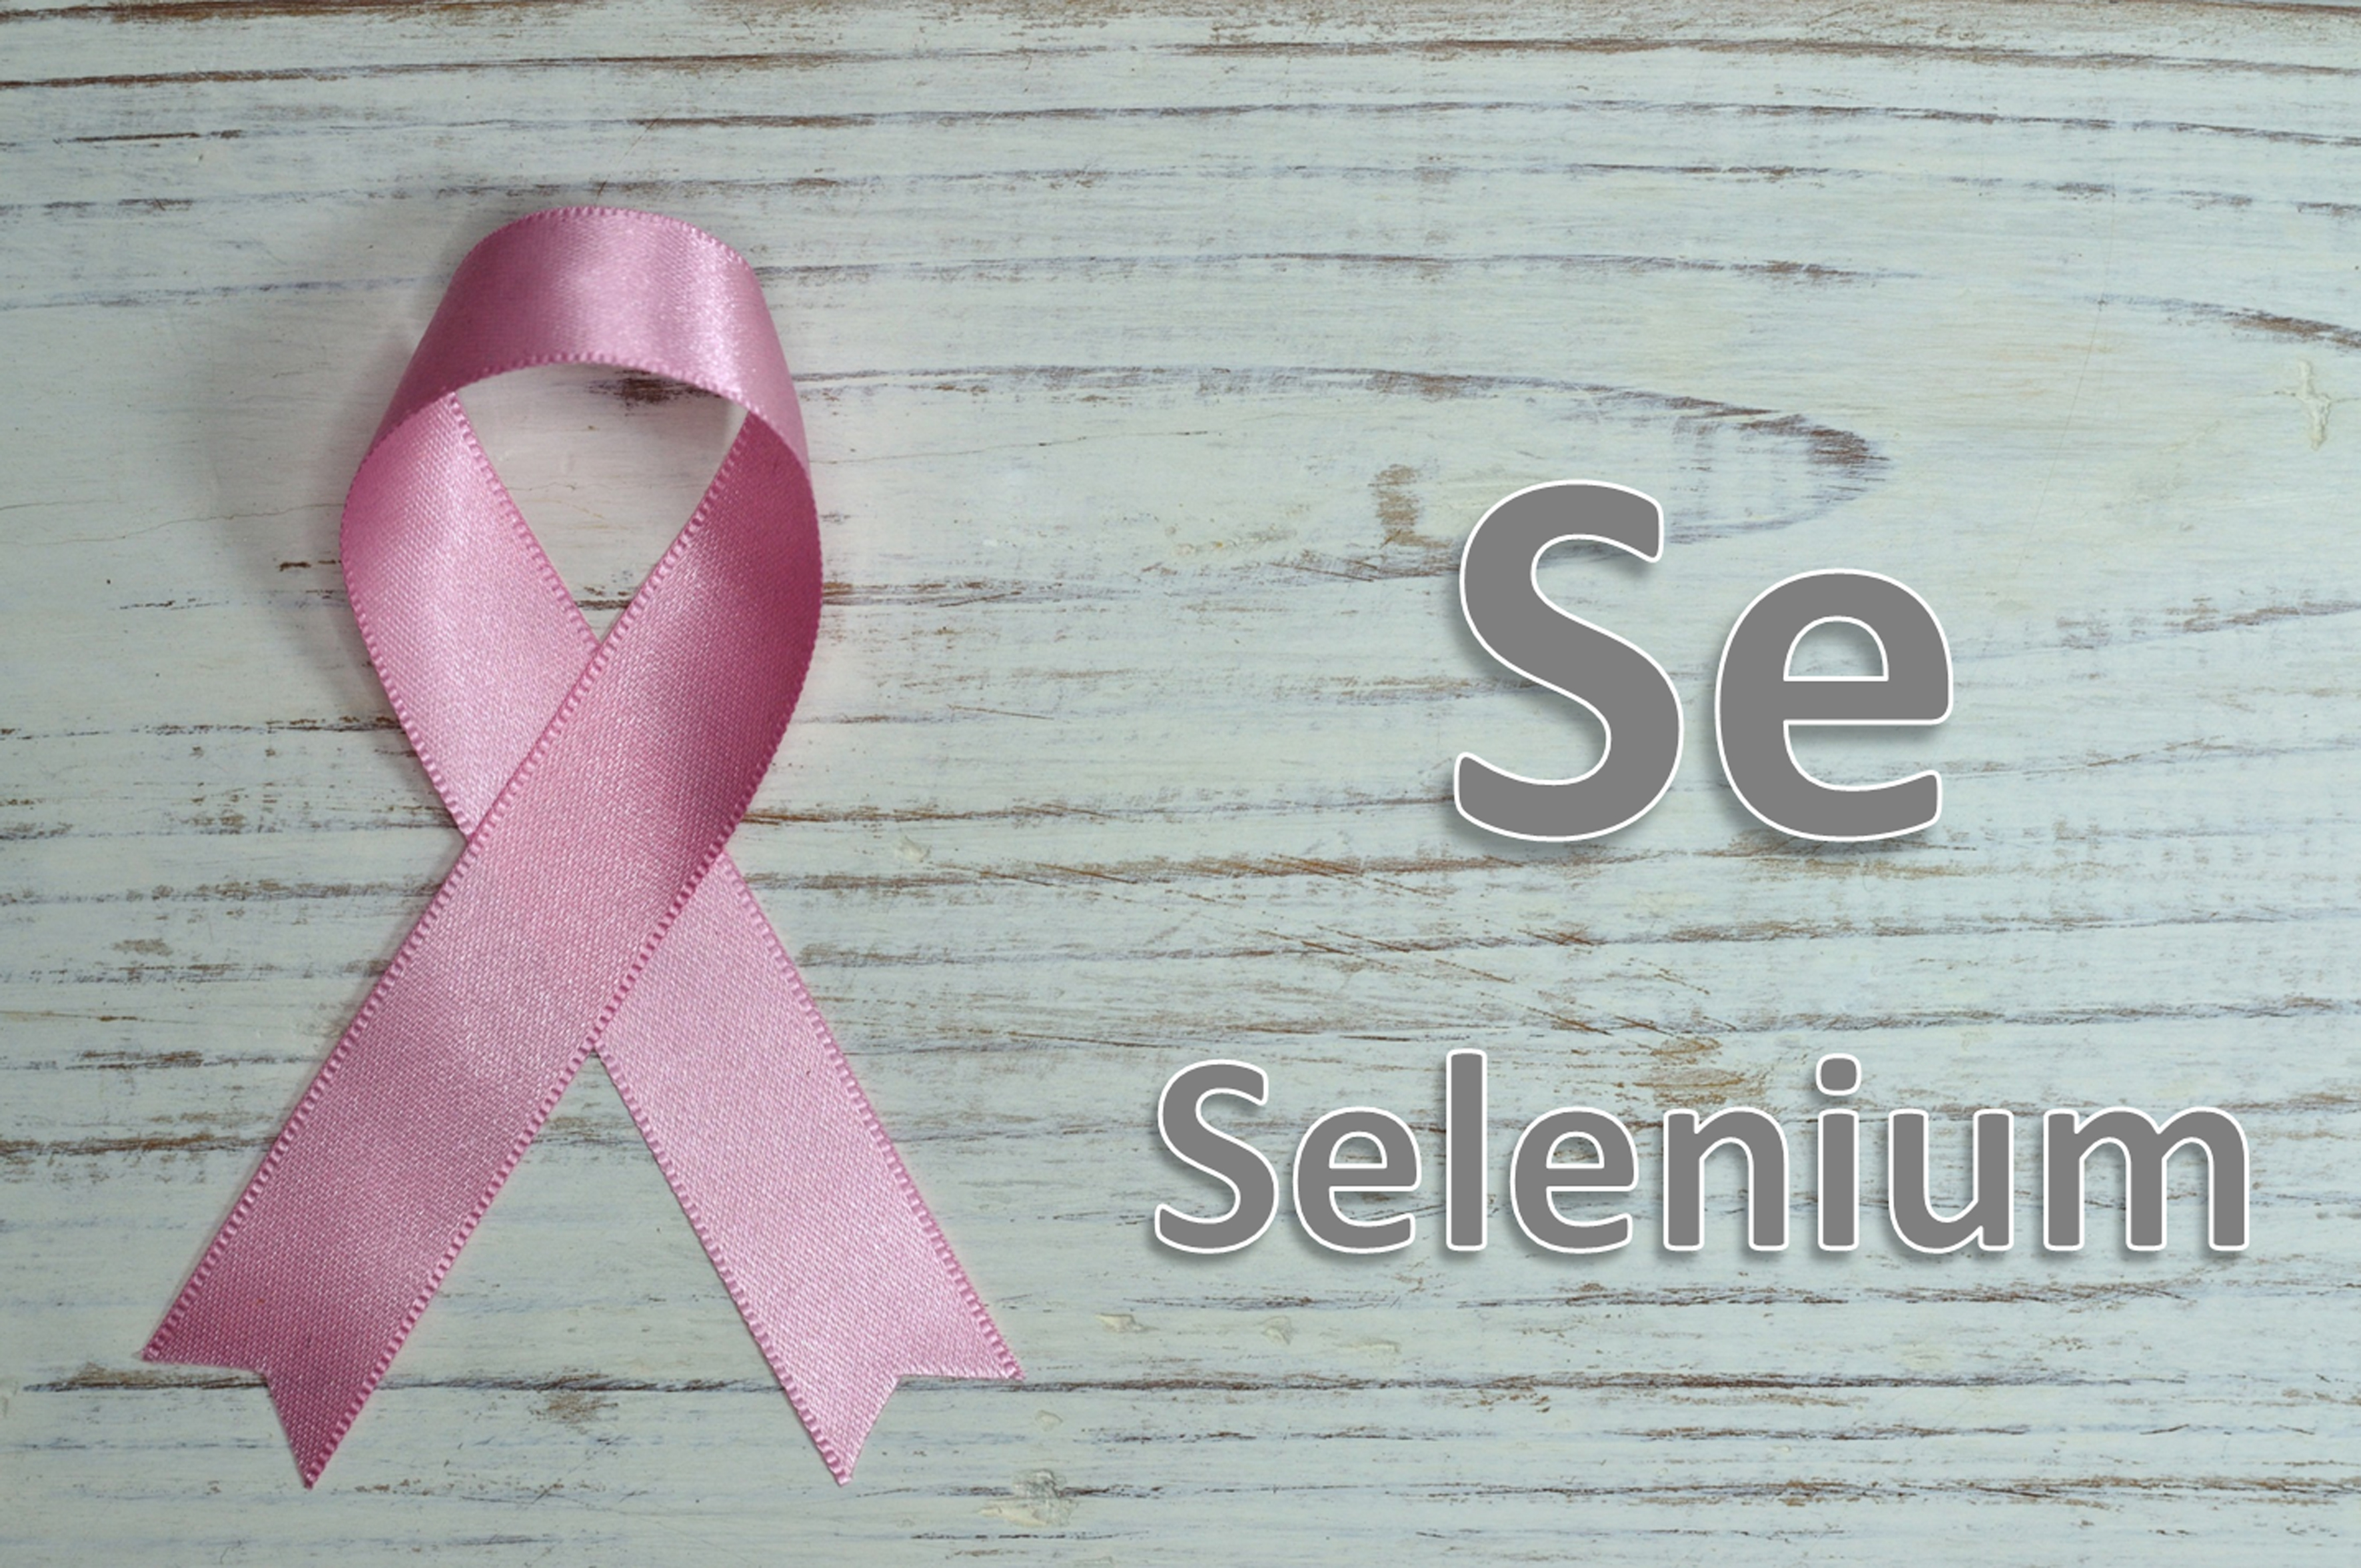 DoesItWorkSummary Selenium for Prevention of Cancer